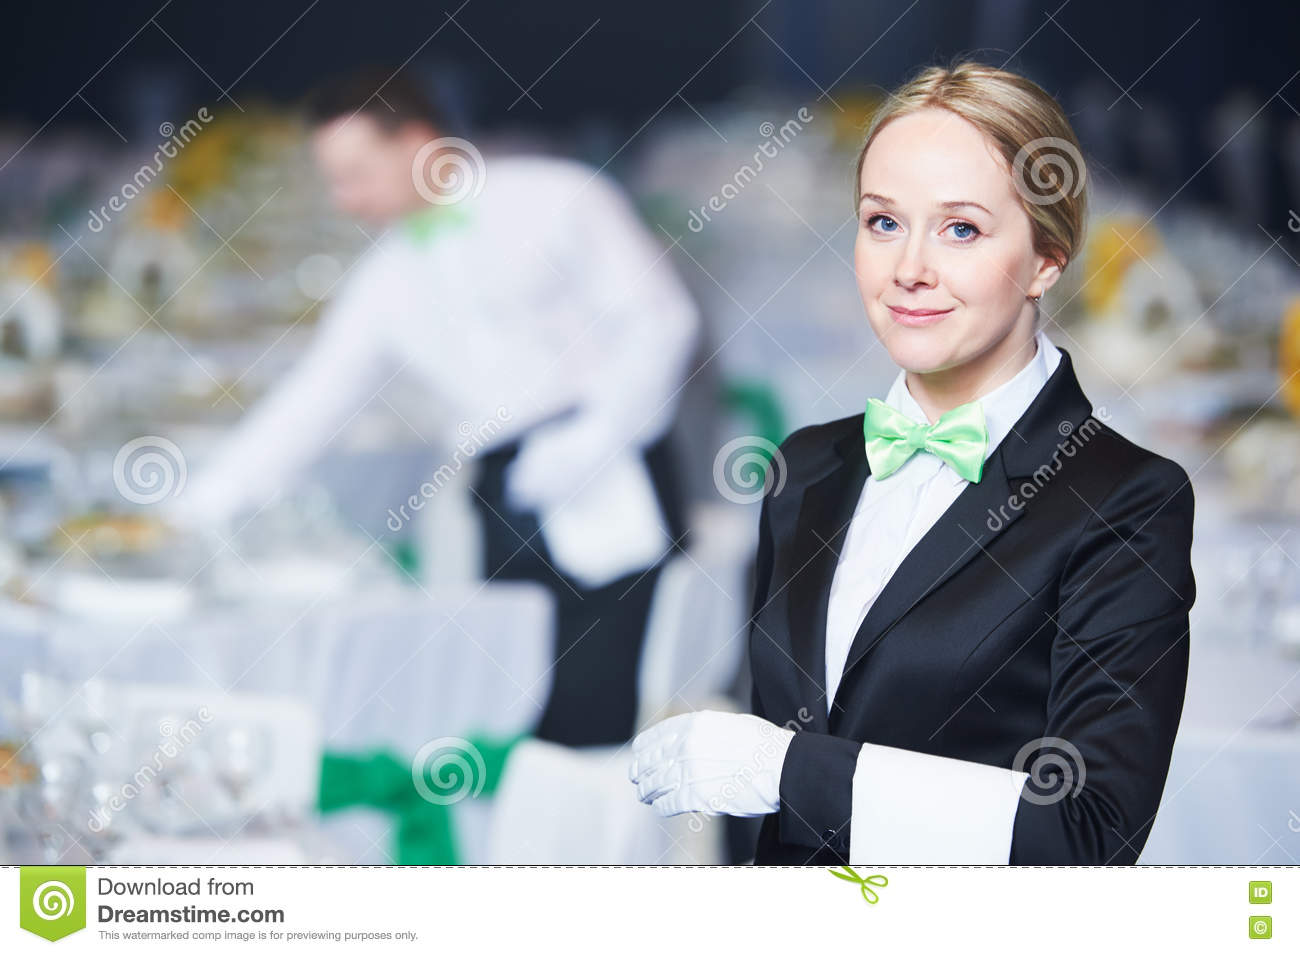 Catering Service Waitress On Duty In Restaurant Stock Image